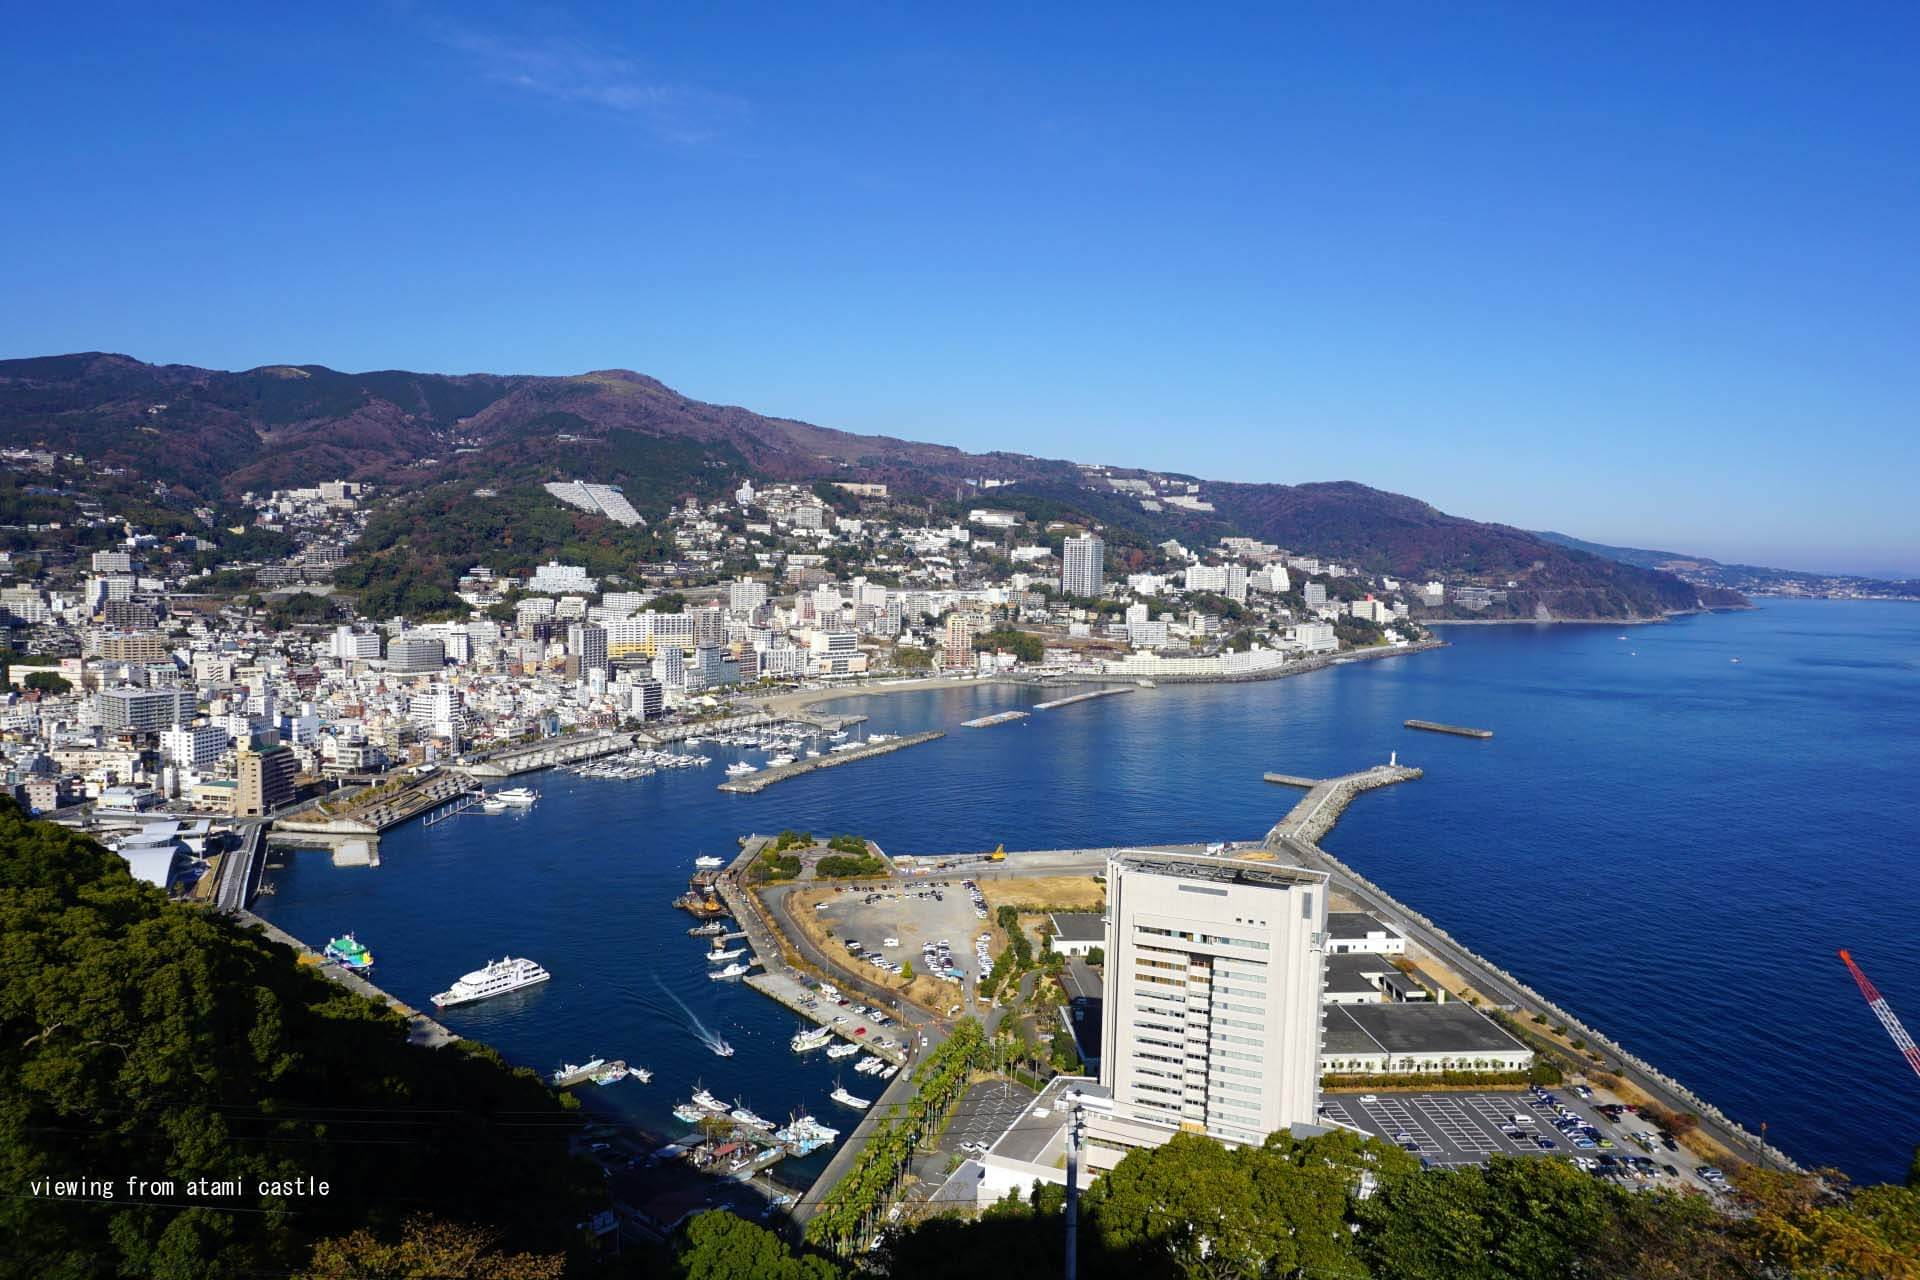 35.8 million yen [Izu]  Villa with an open-air bath with superb views, a fireworks display in Atami, Sagami Bay panoramic view